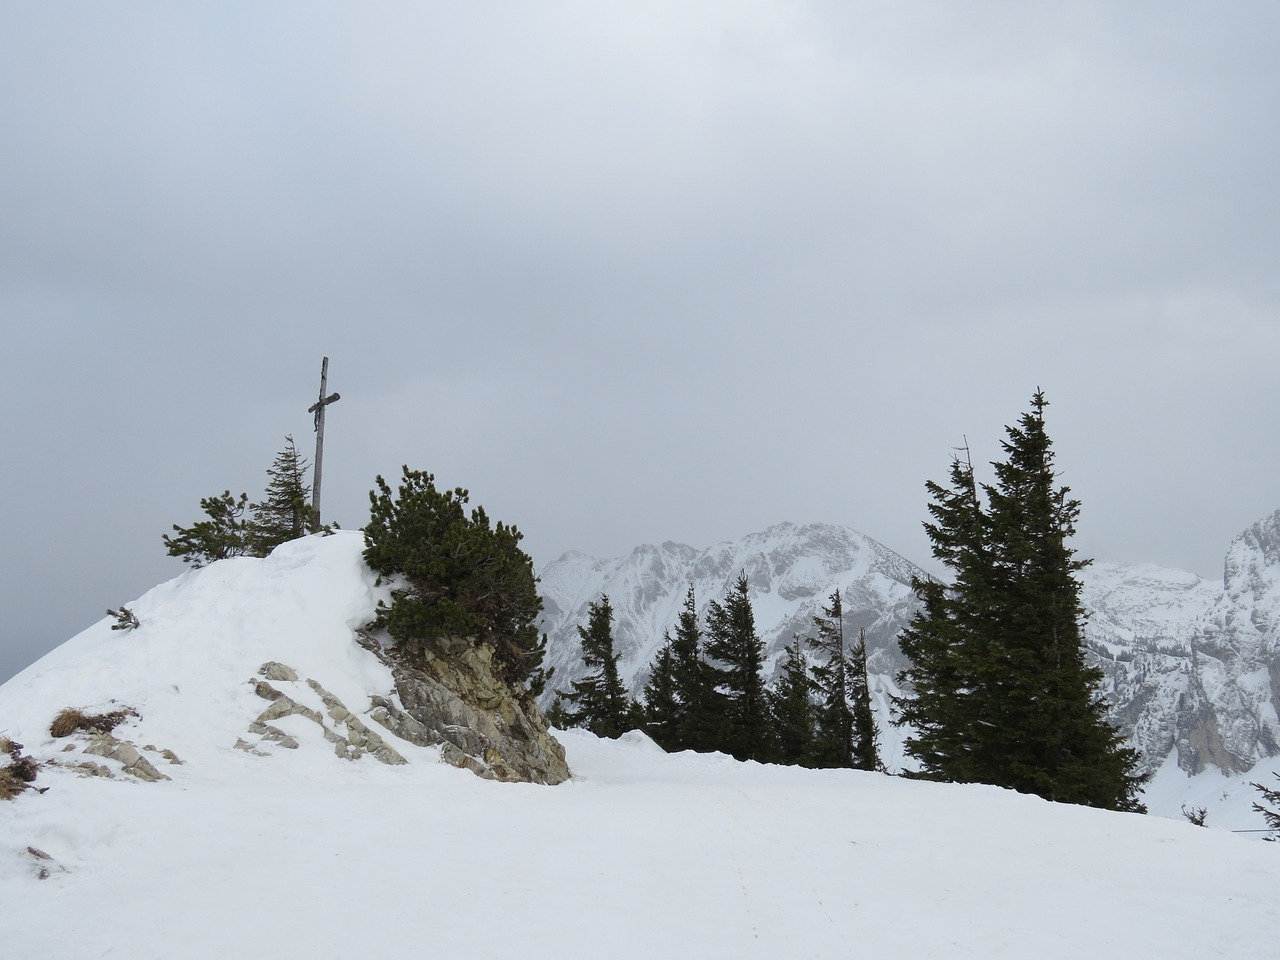 breitenberg summit summit cross free photo